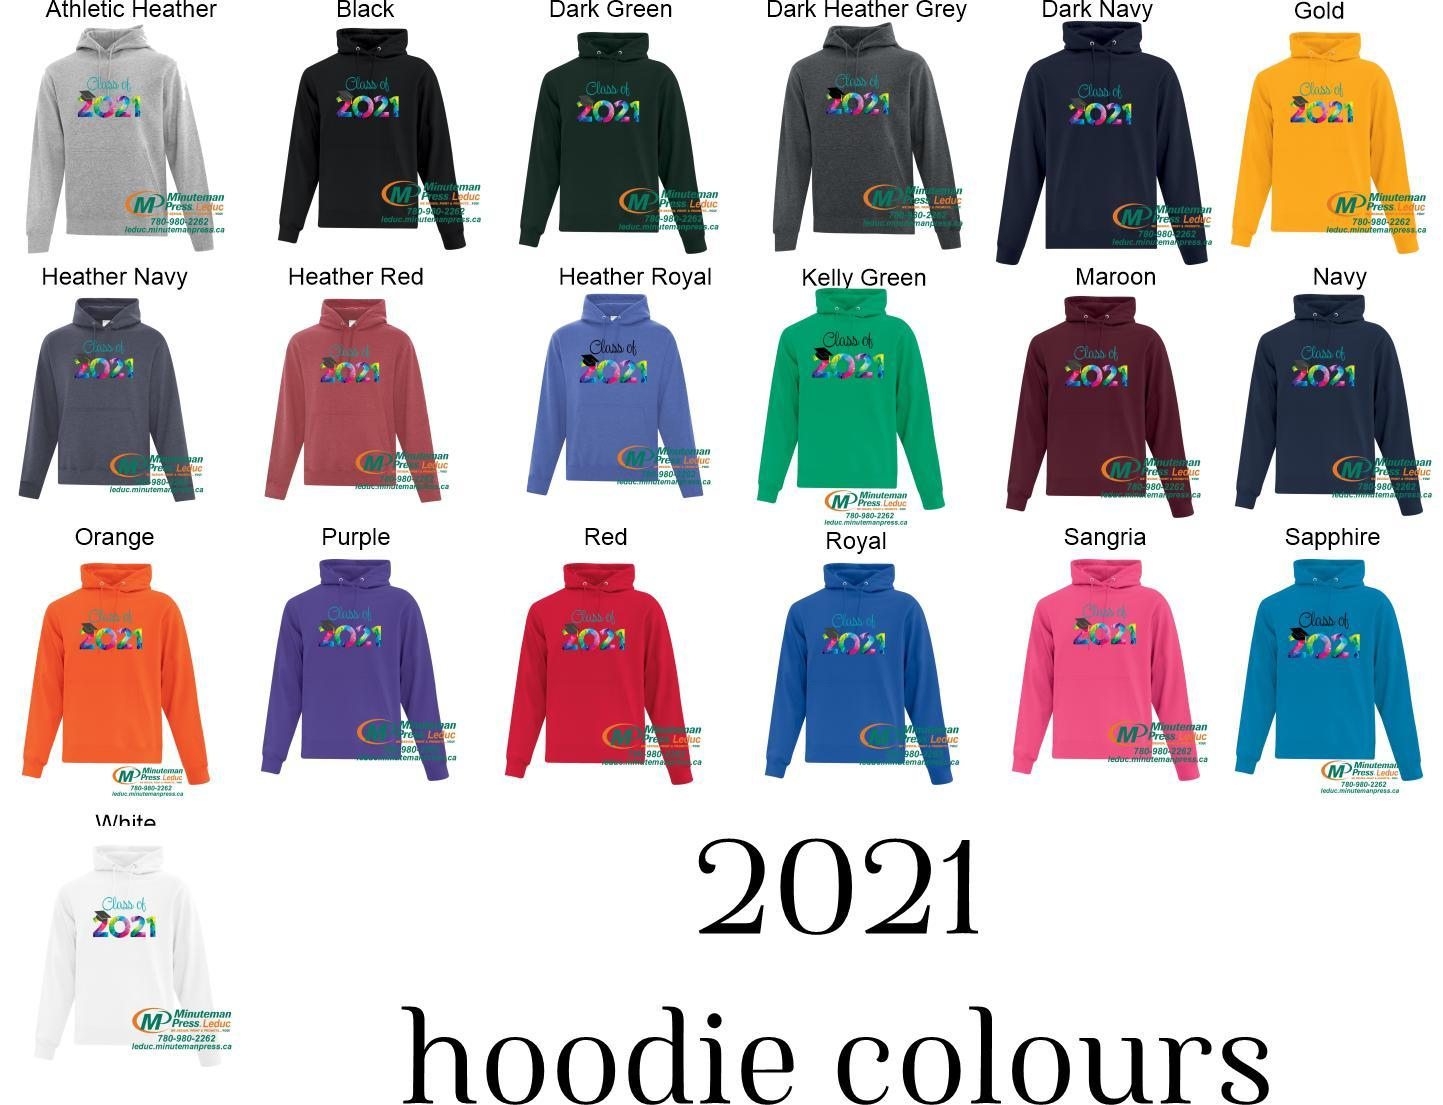 Grad 2021 - Super comfortable hoodies